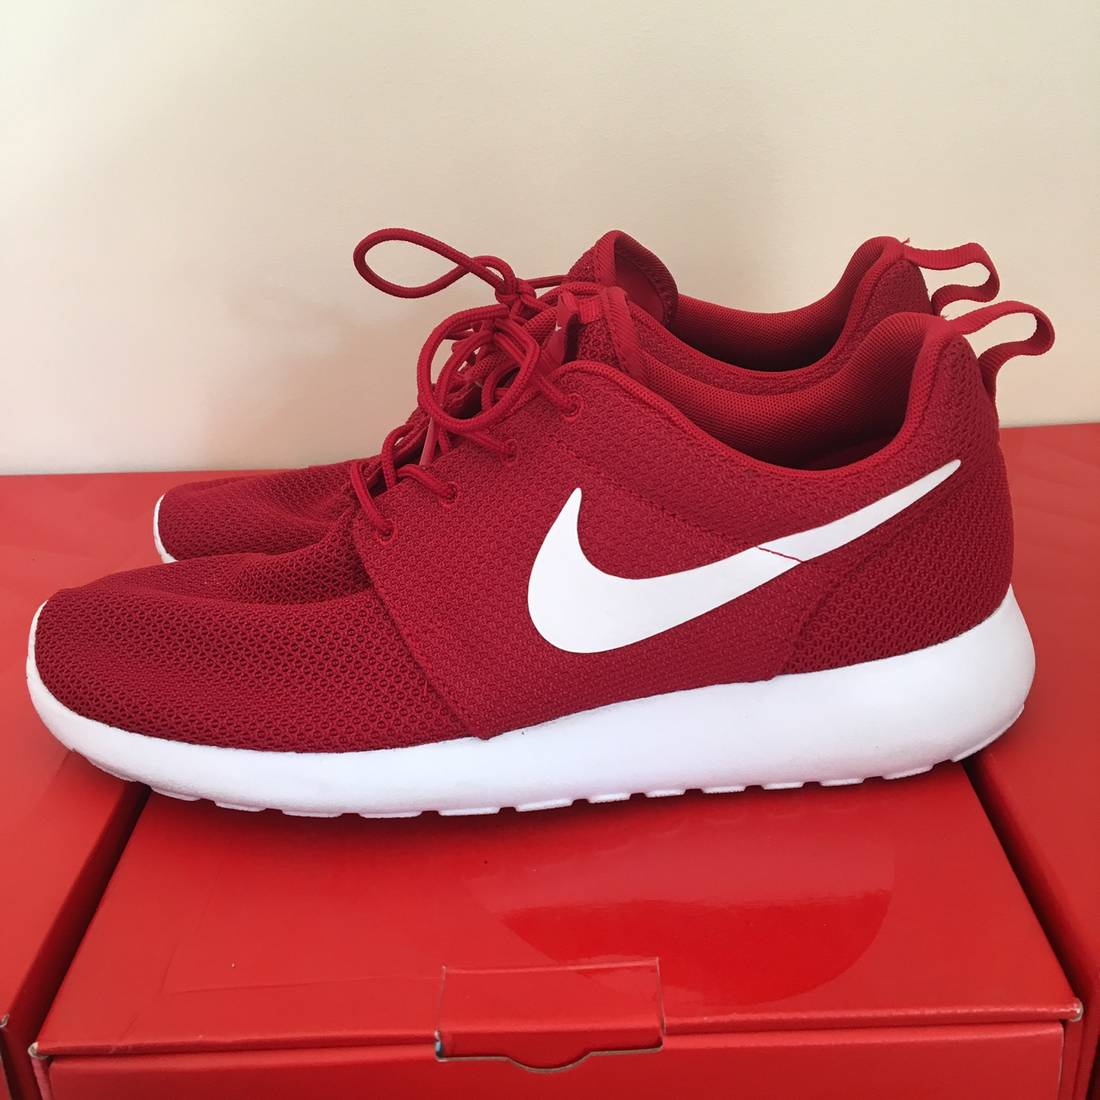 d458bbd3d coupon for nike nike roshe one gym red white size 10 vnds size us 10 eu